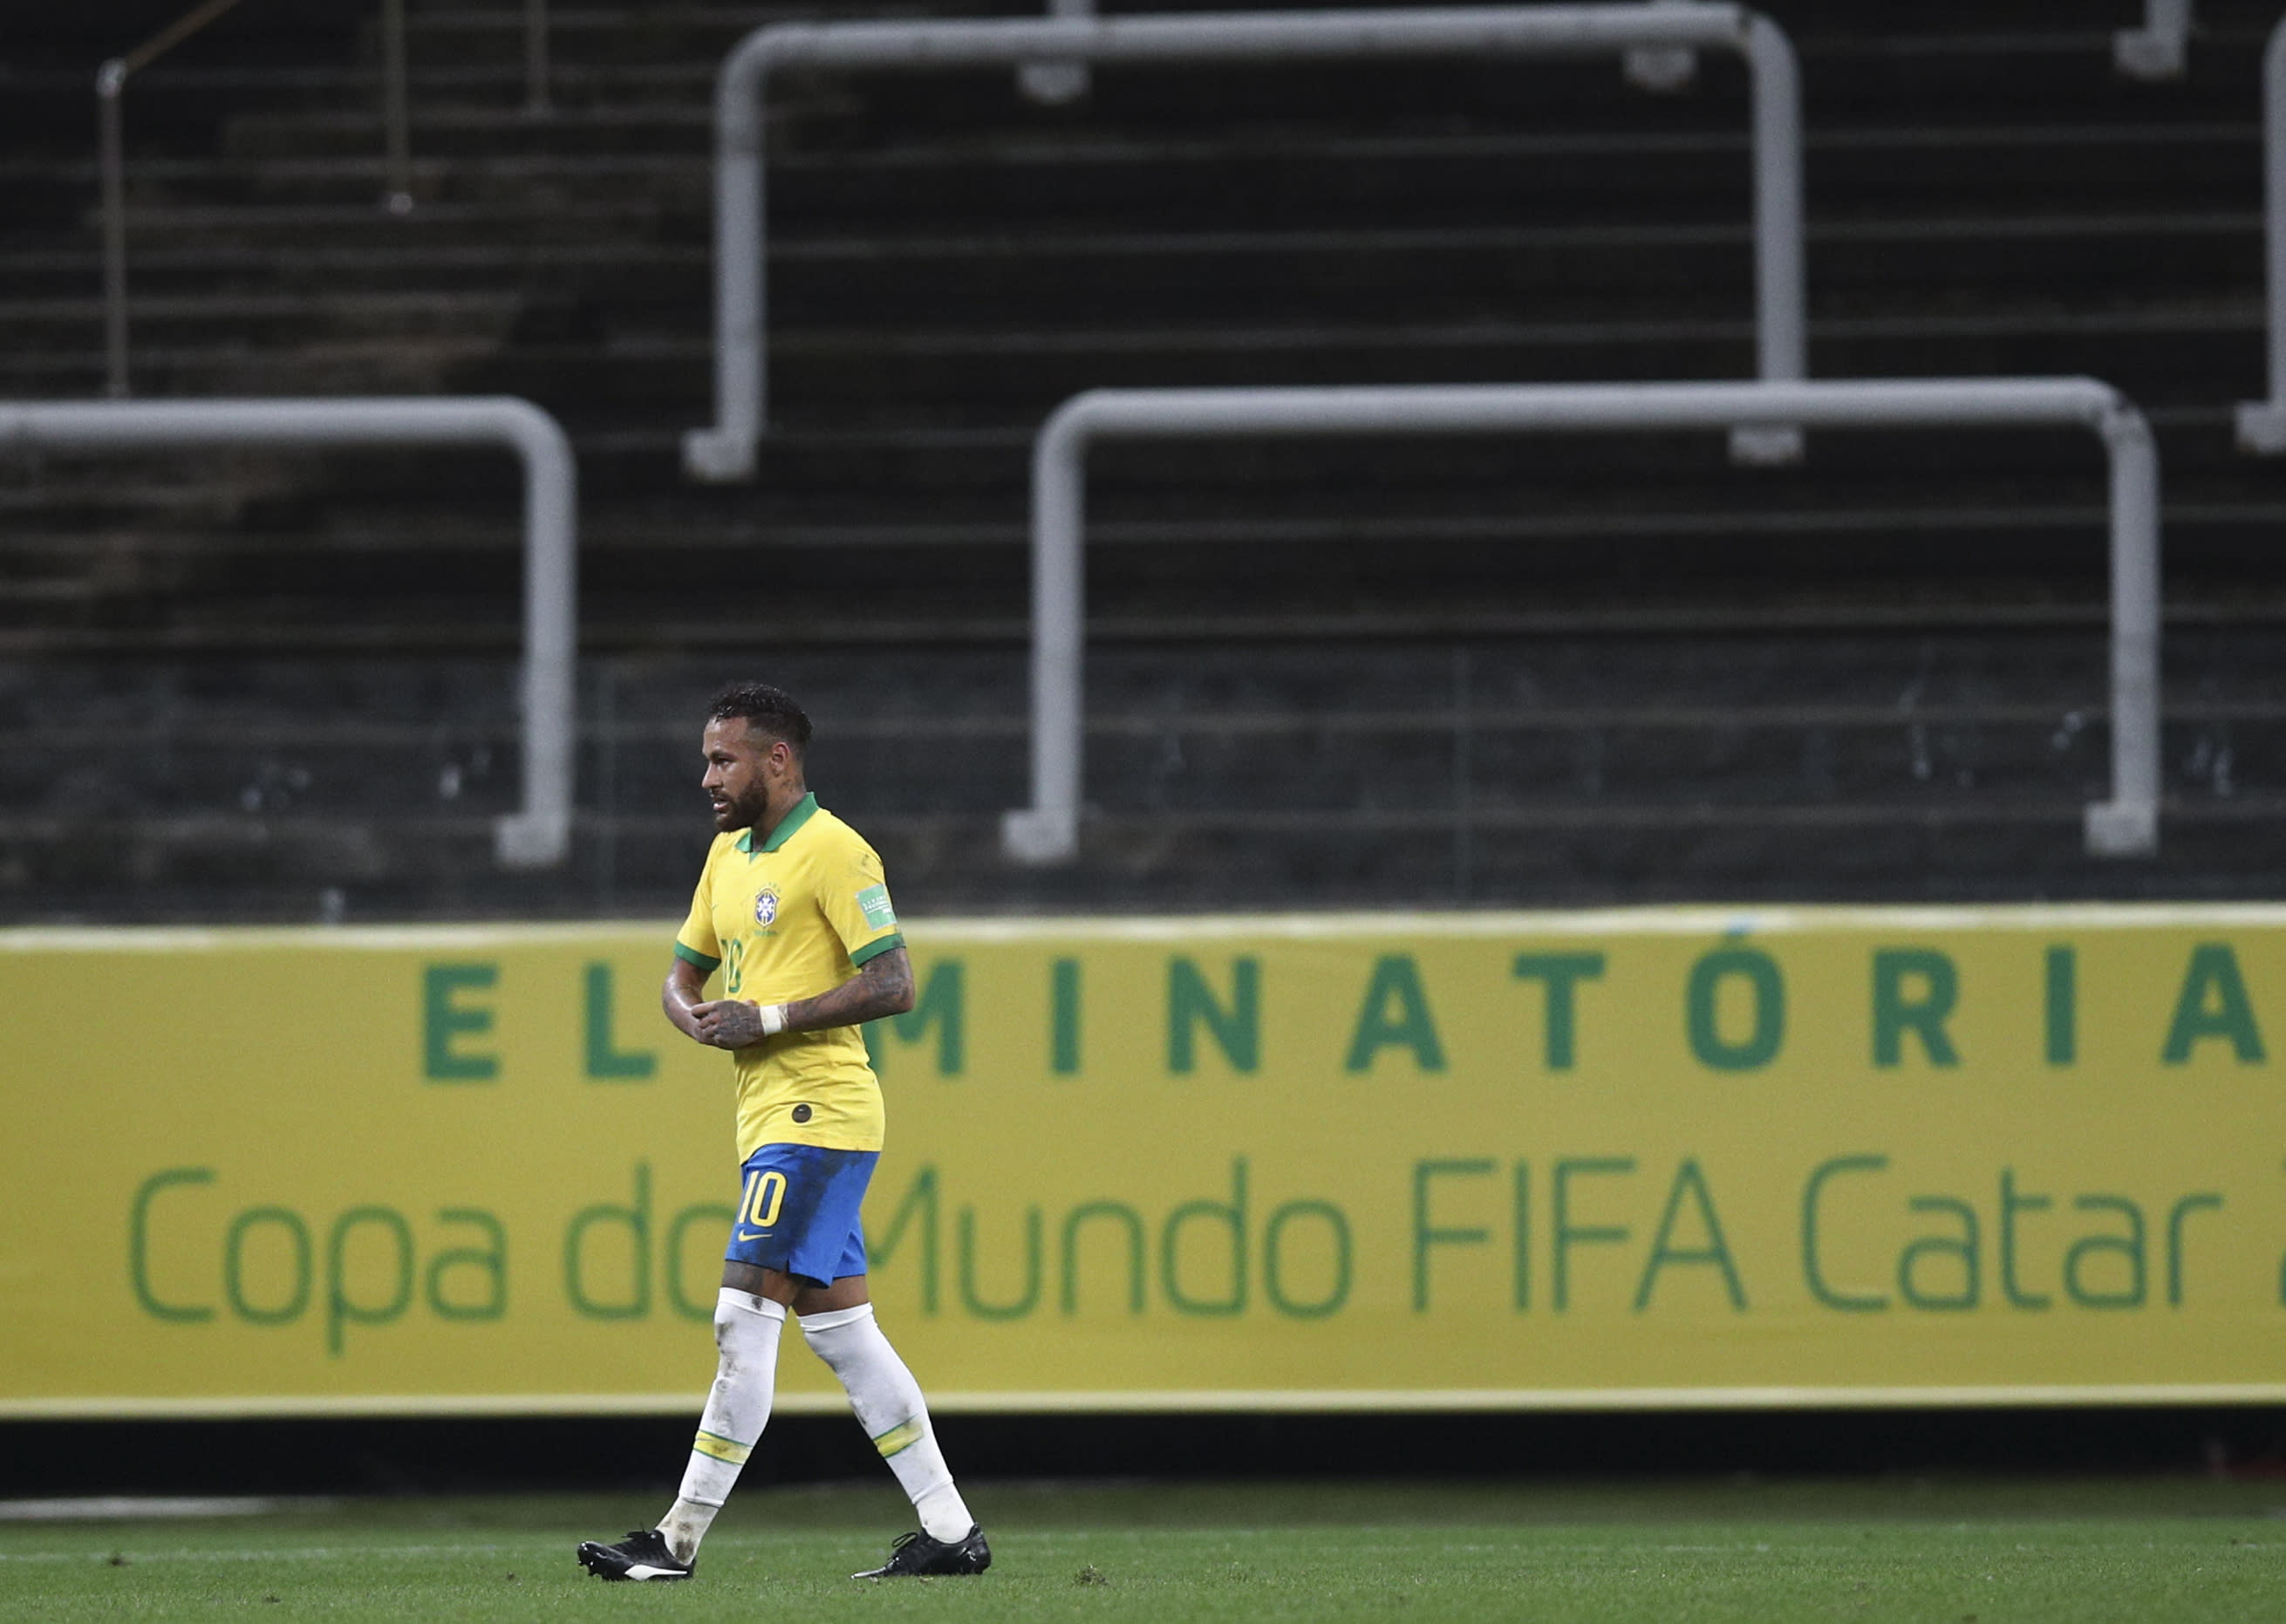 Brazil Argentina Eye Road Hurdles In World Cup Qualifiers